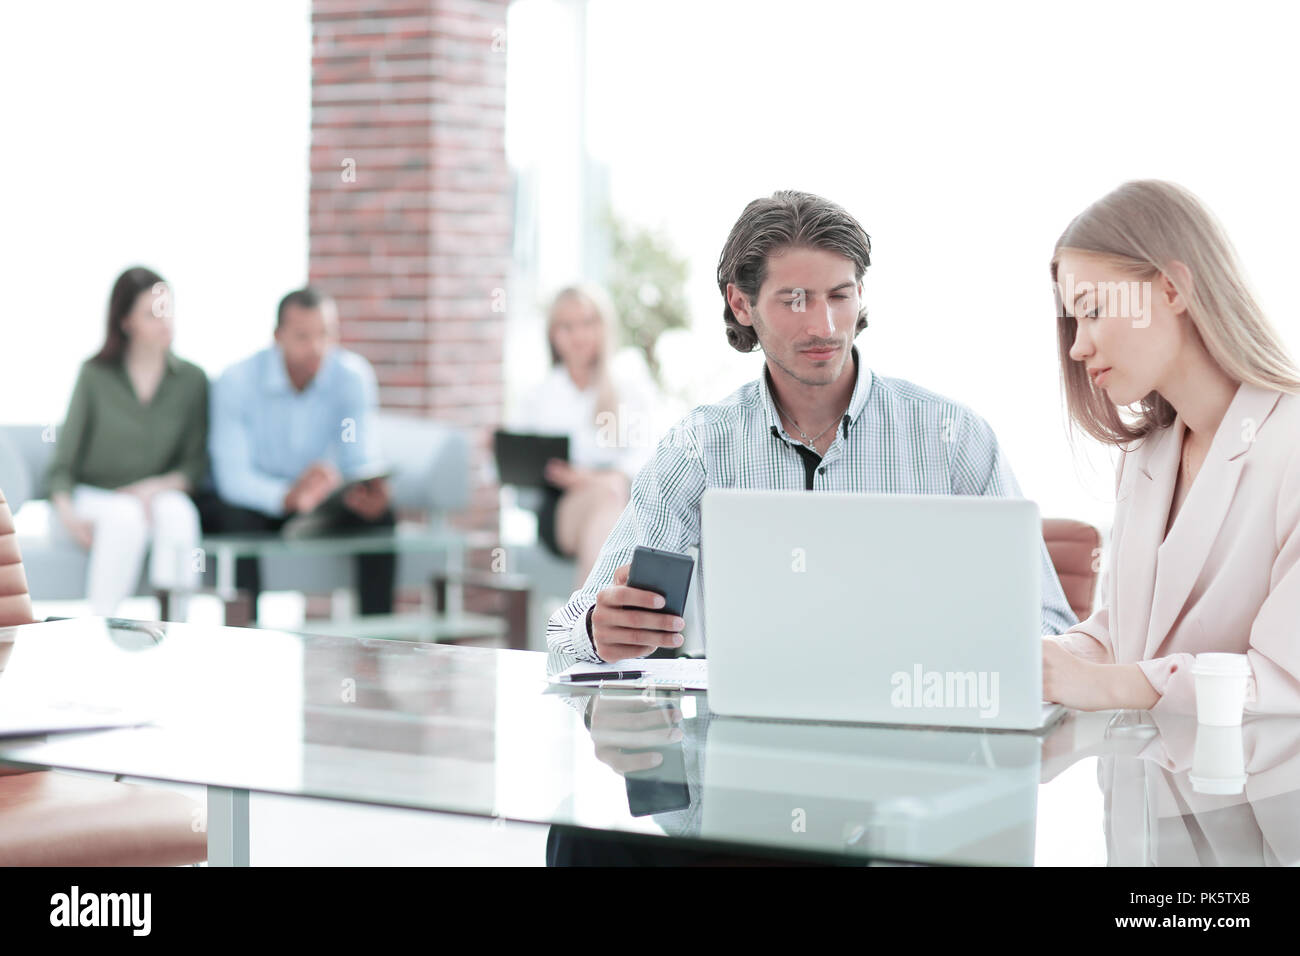 Manager is talking to in the Bank office - Stock Image